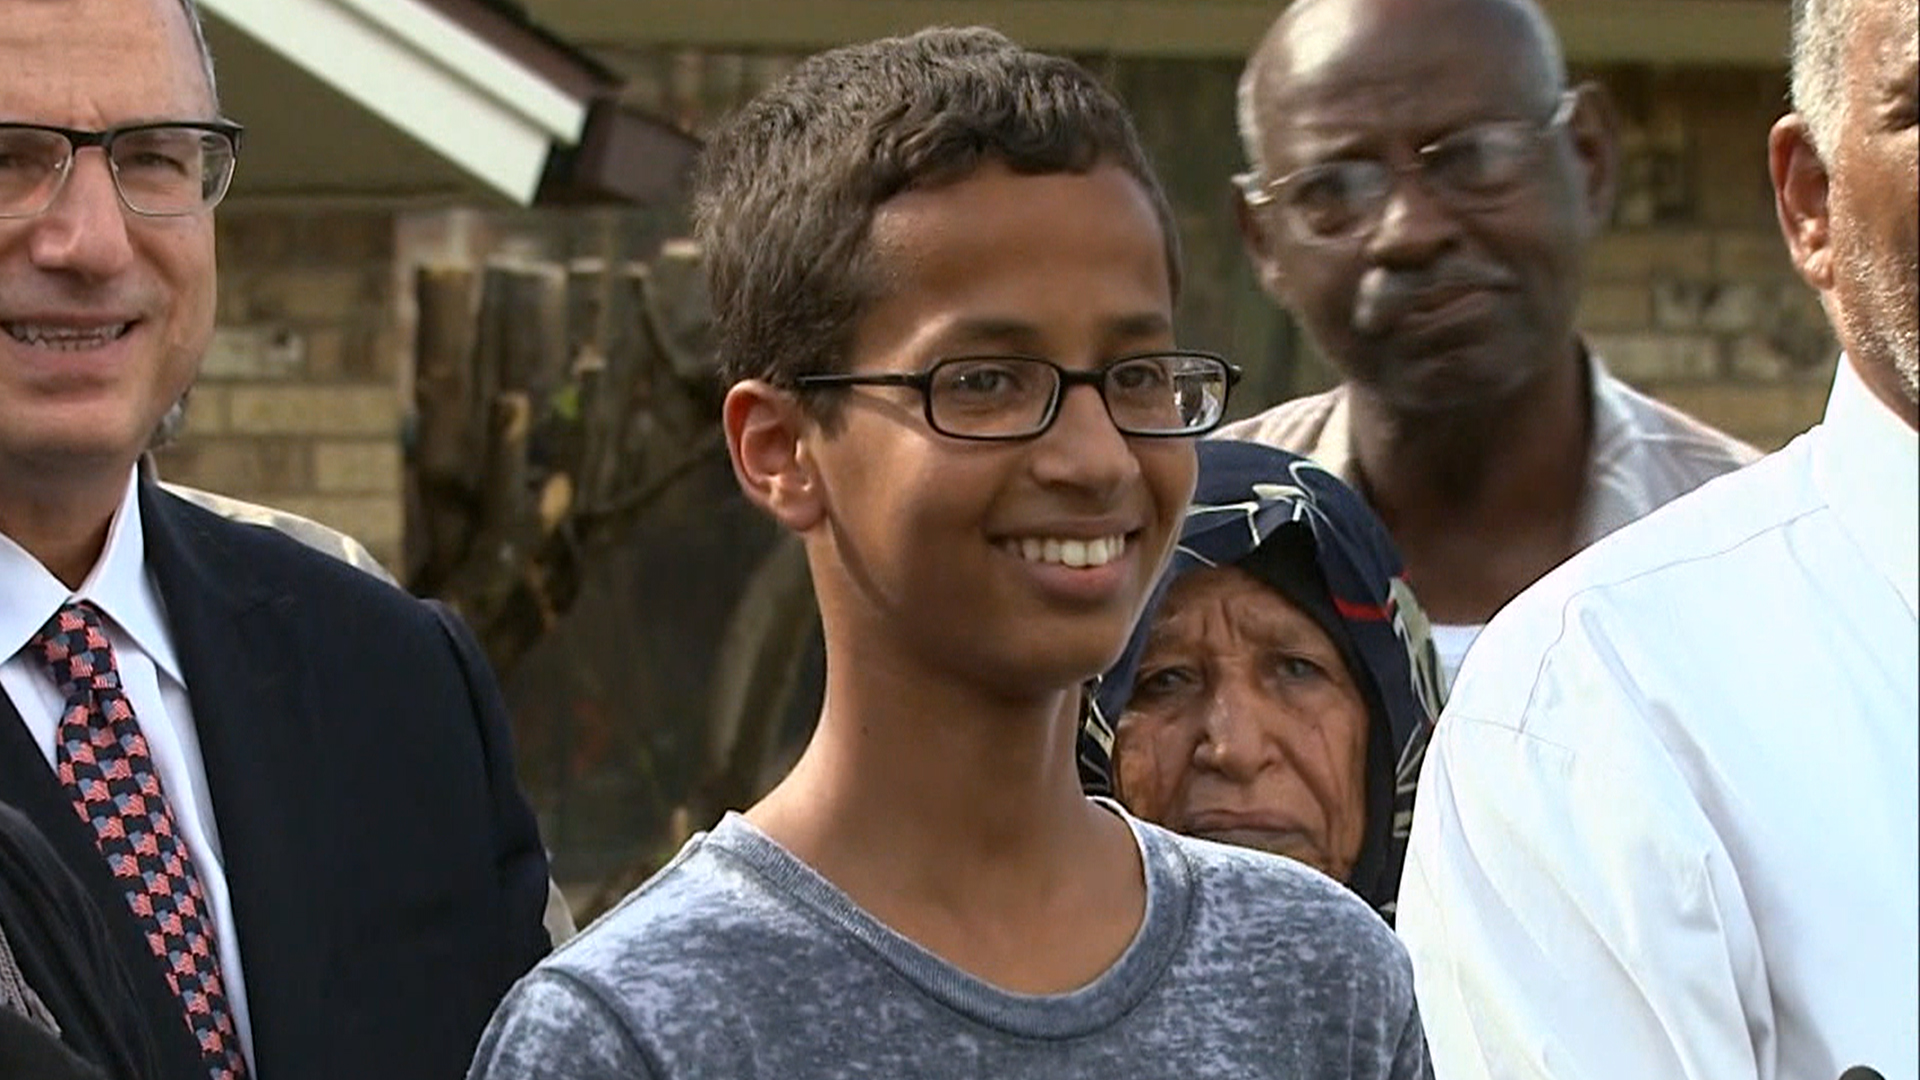 Ahmed Mohamed, Teen Cuffed Over Homemade Clock, Eyes MIT